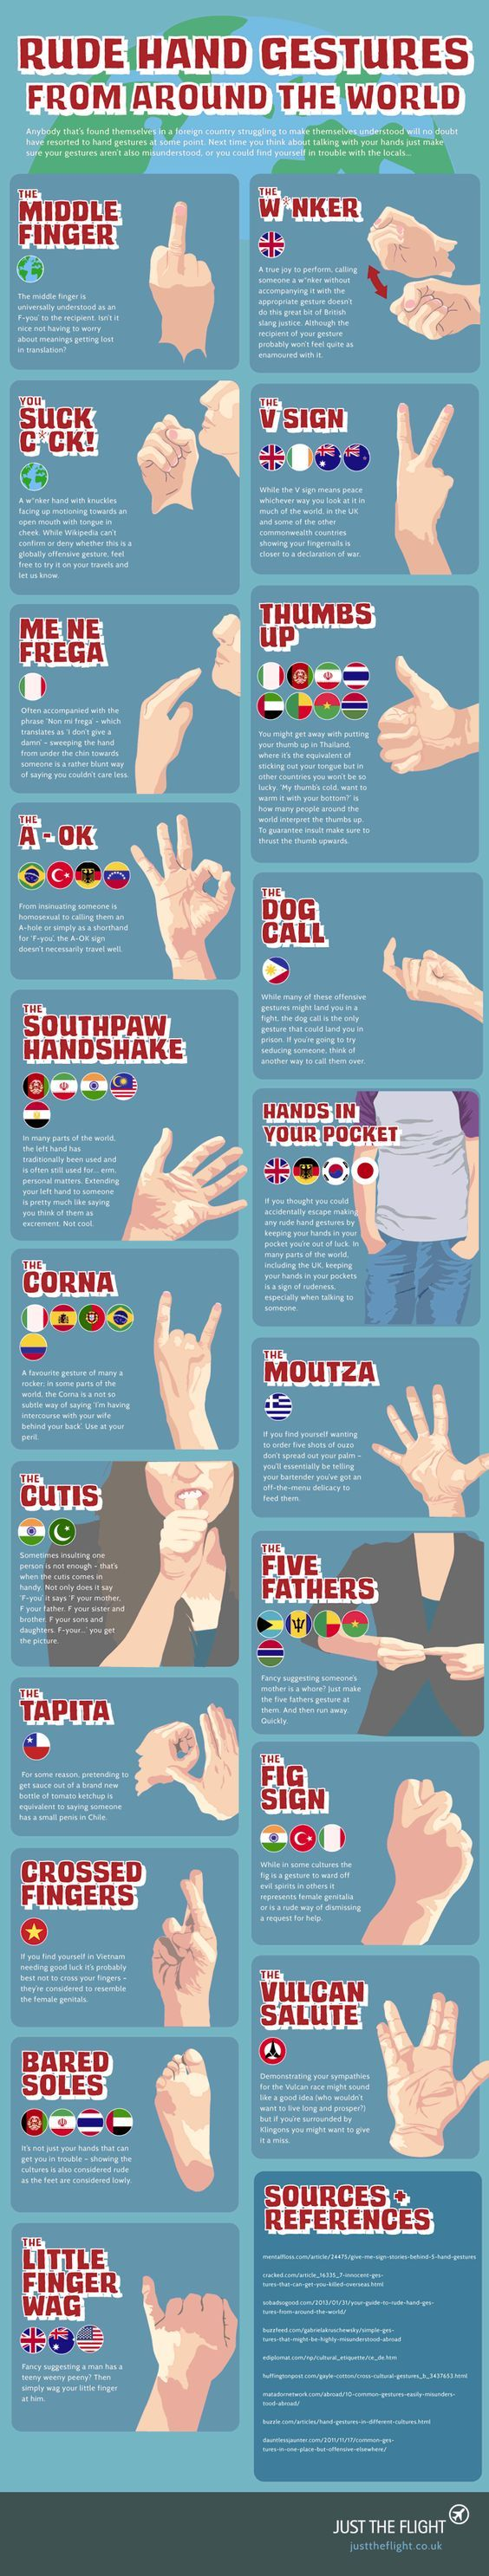 Rude Hand Gestures From Around the World #Infographic - Best Infographics: